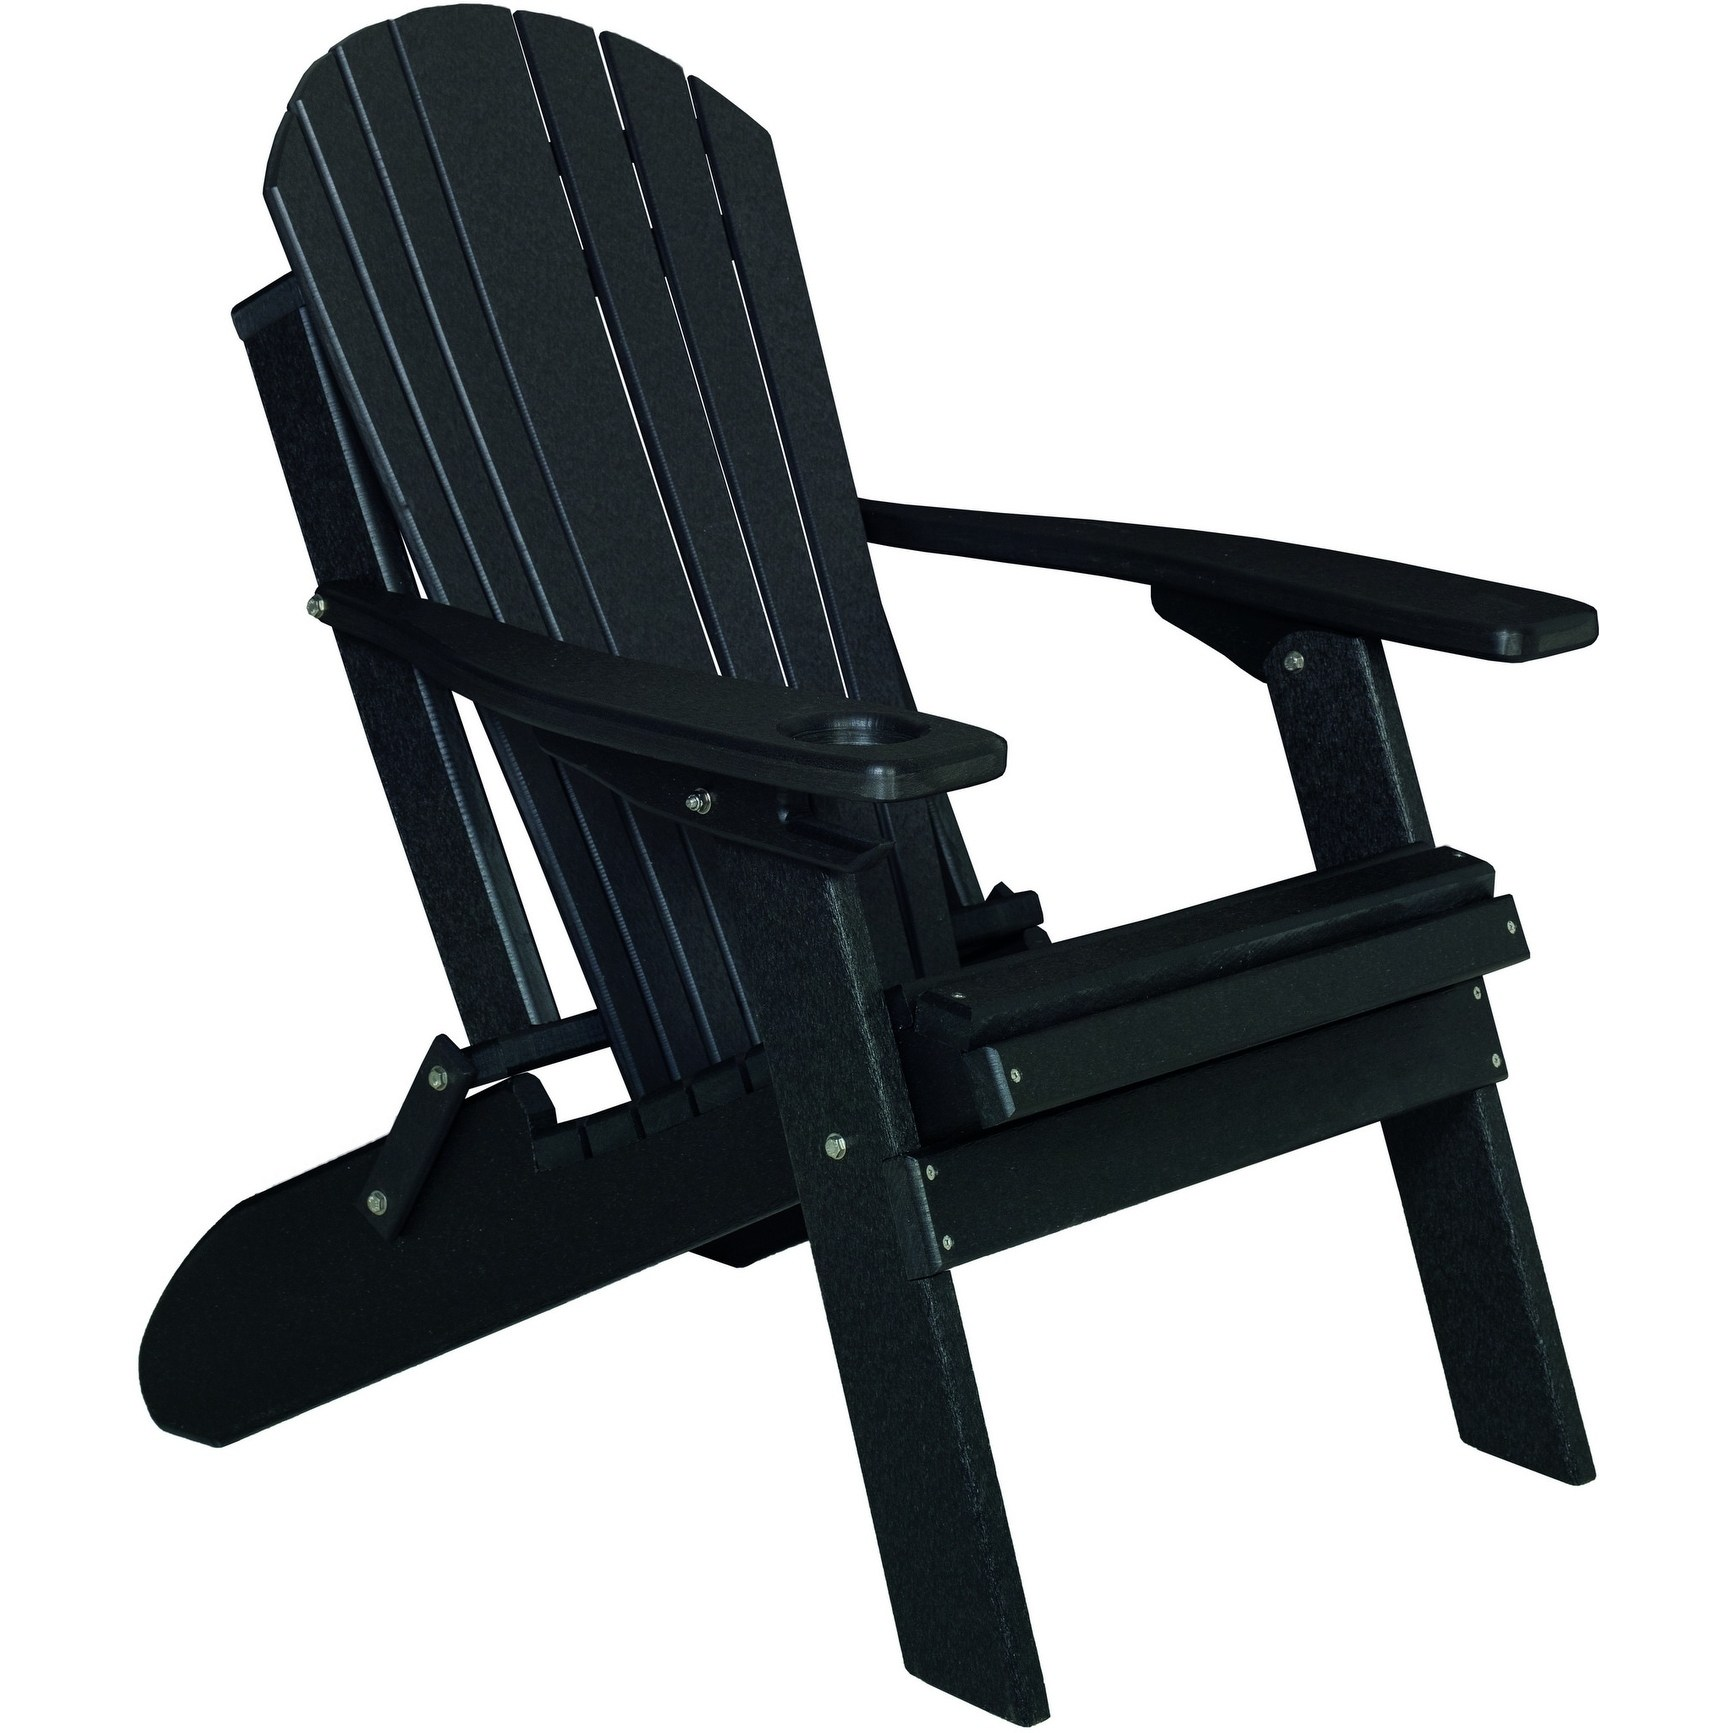 Deluxe Premium Poly Lumber Folding Adirondack Chair w/ Cup Holder